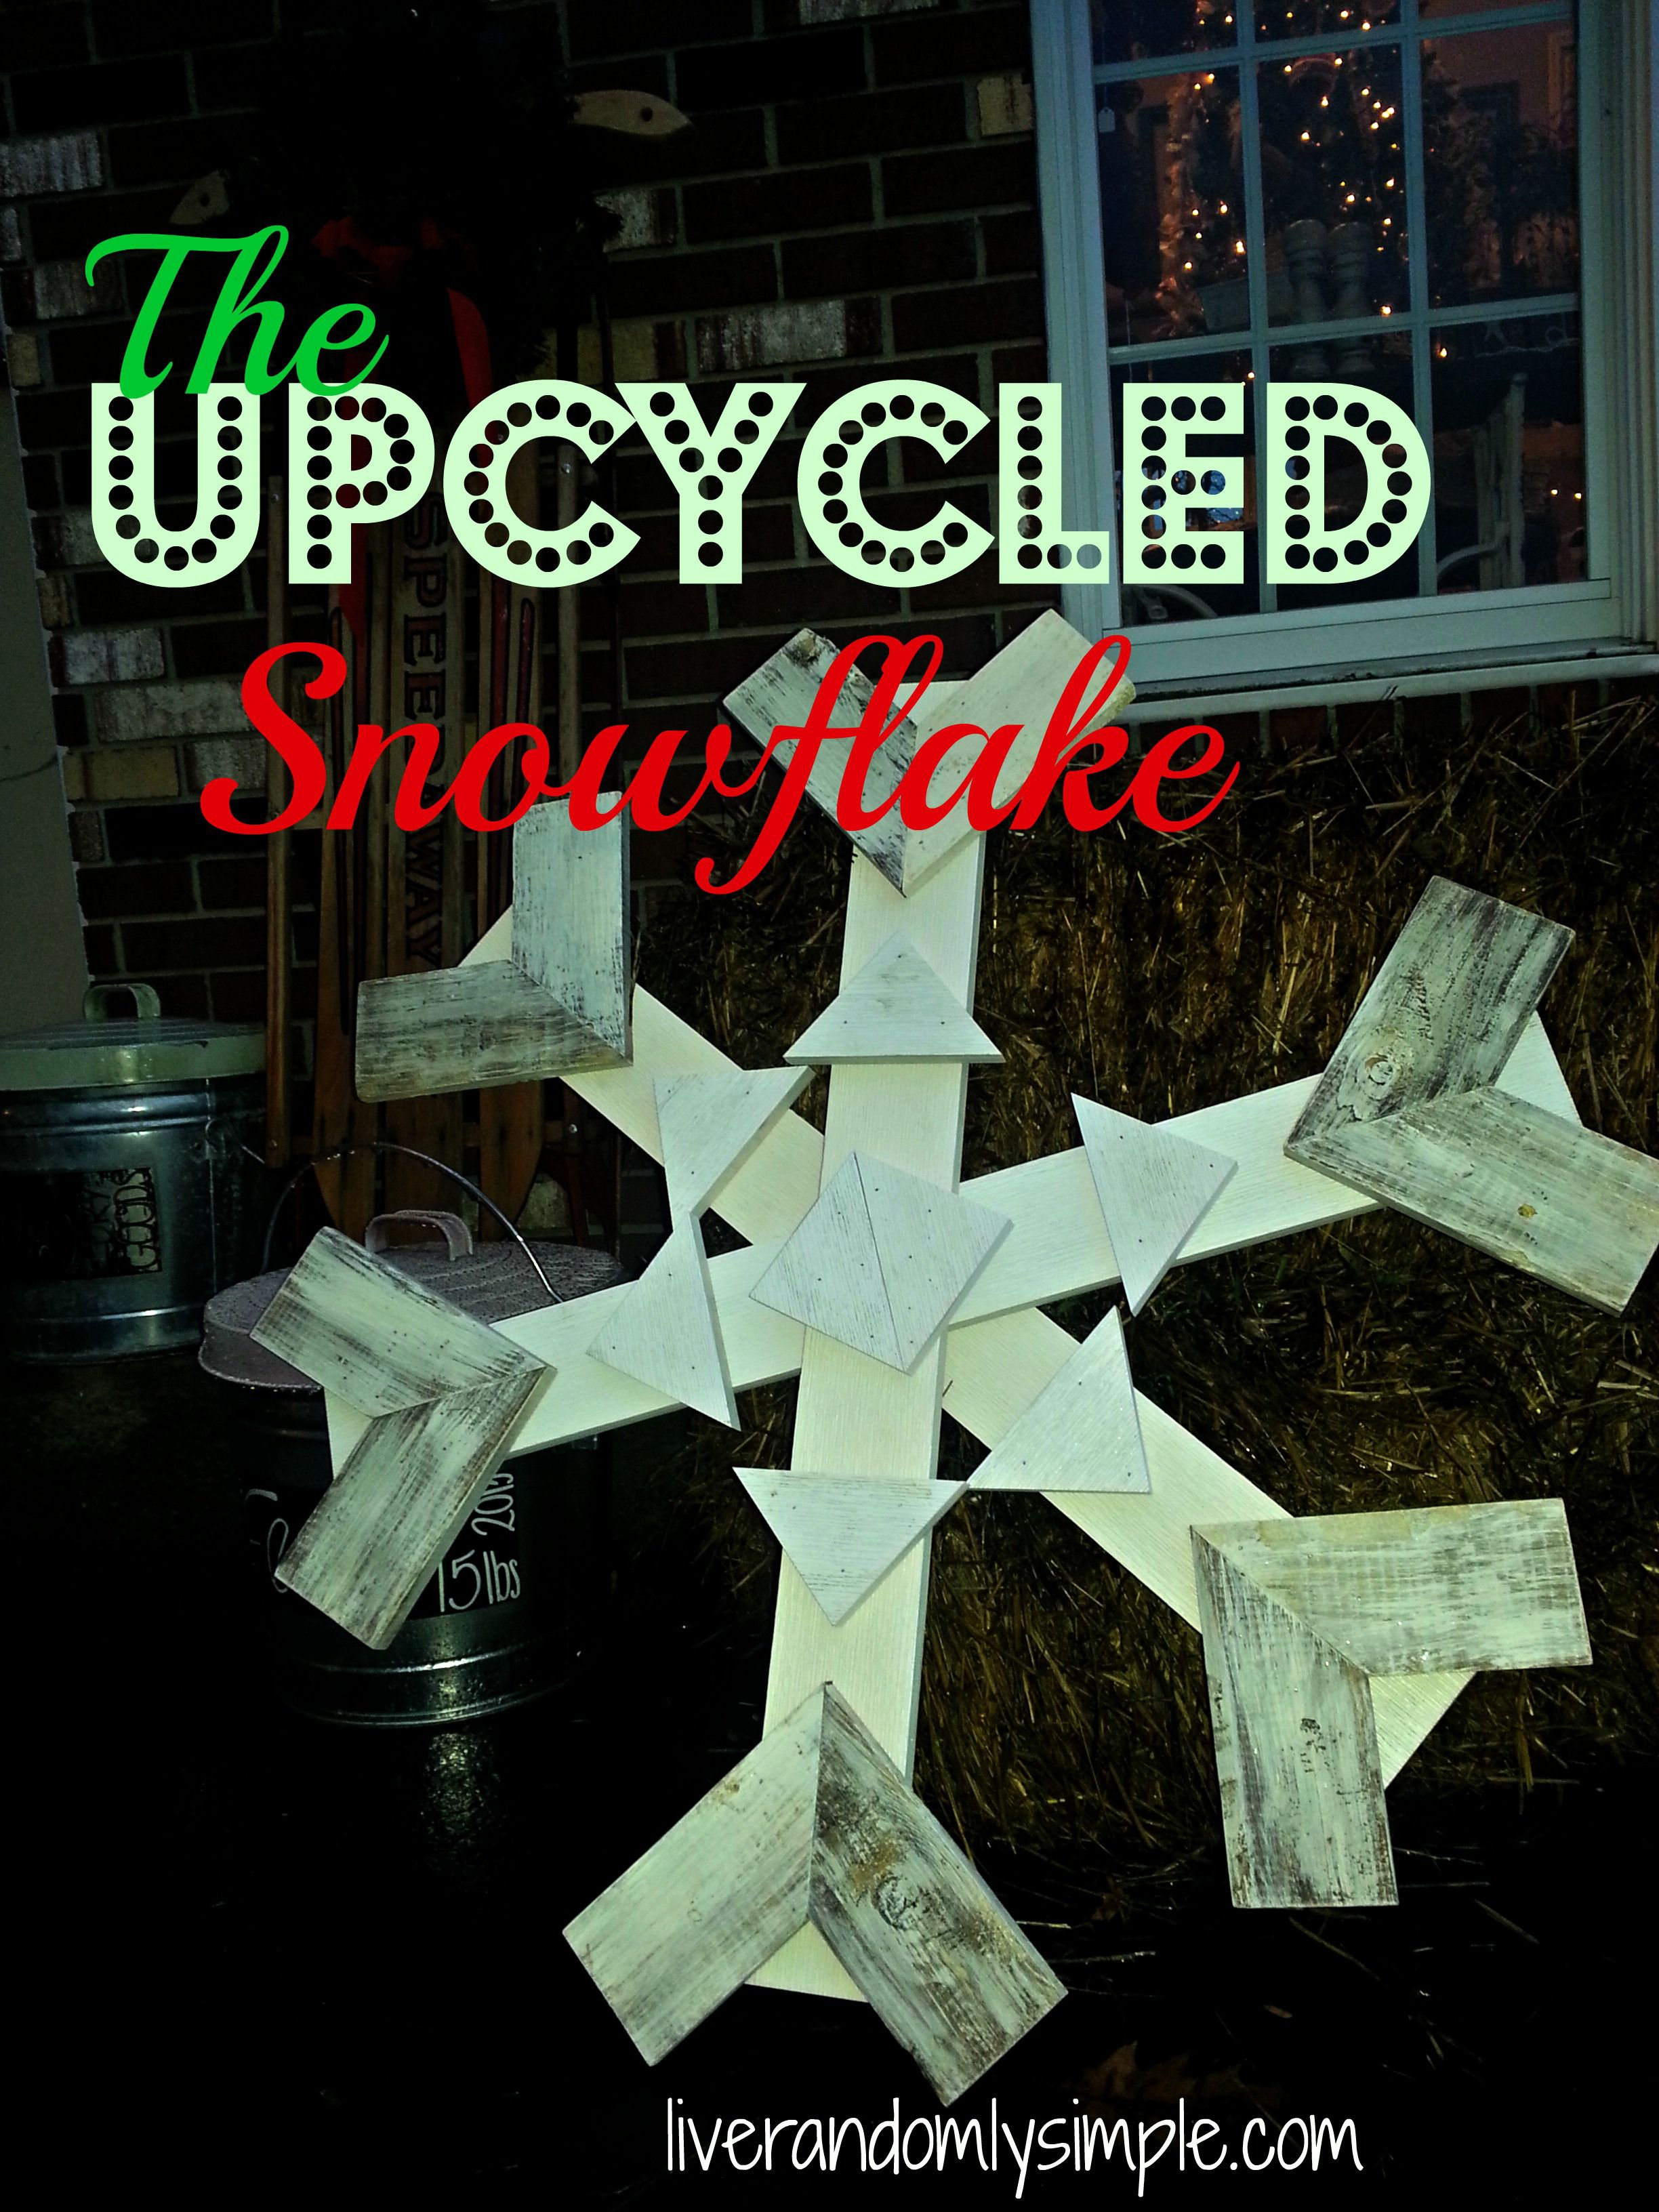 How To Make A Giant Wooden Snowflake Wooden Snowflakes Snowflakes Christmas Decorations